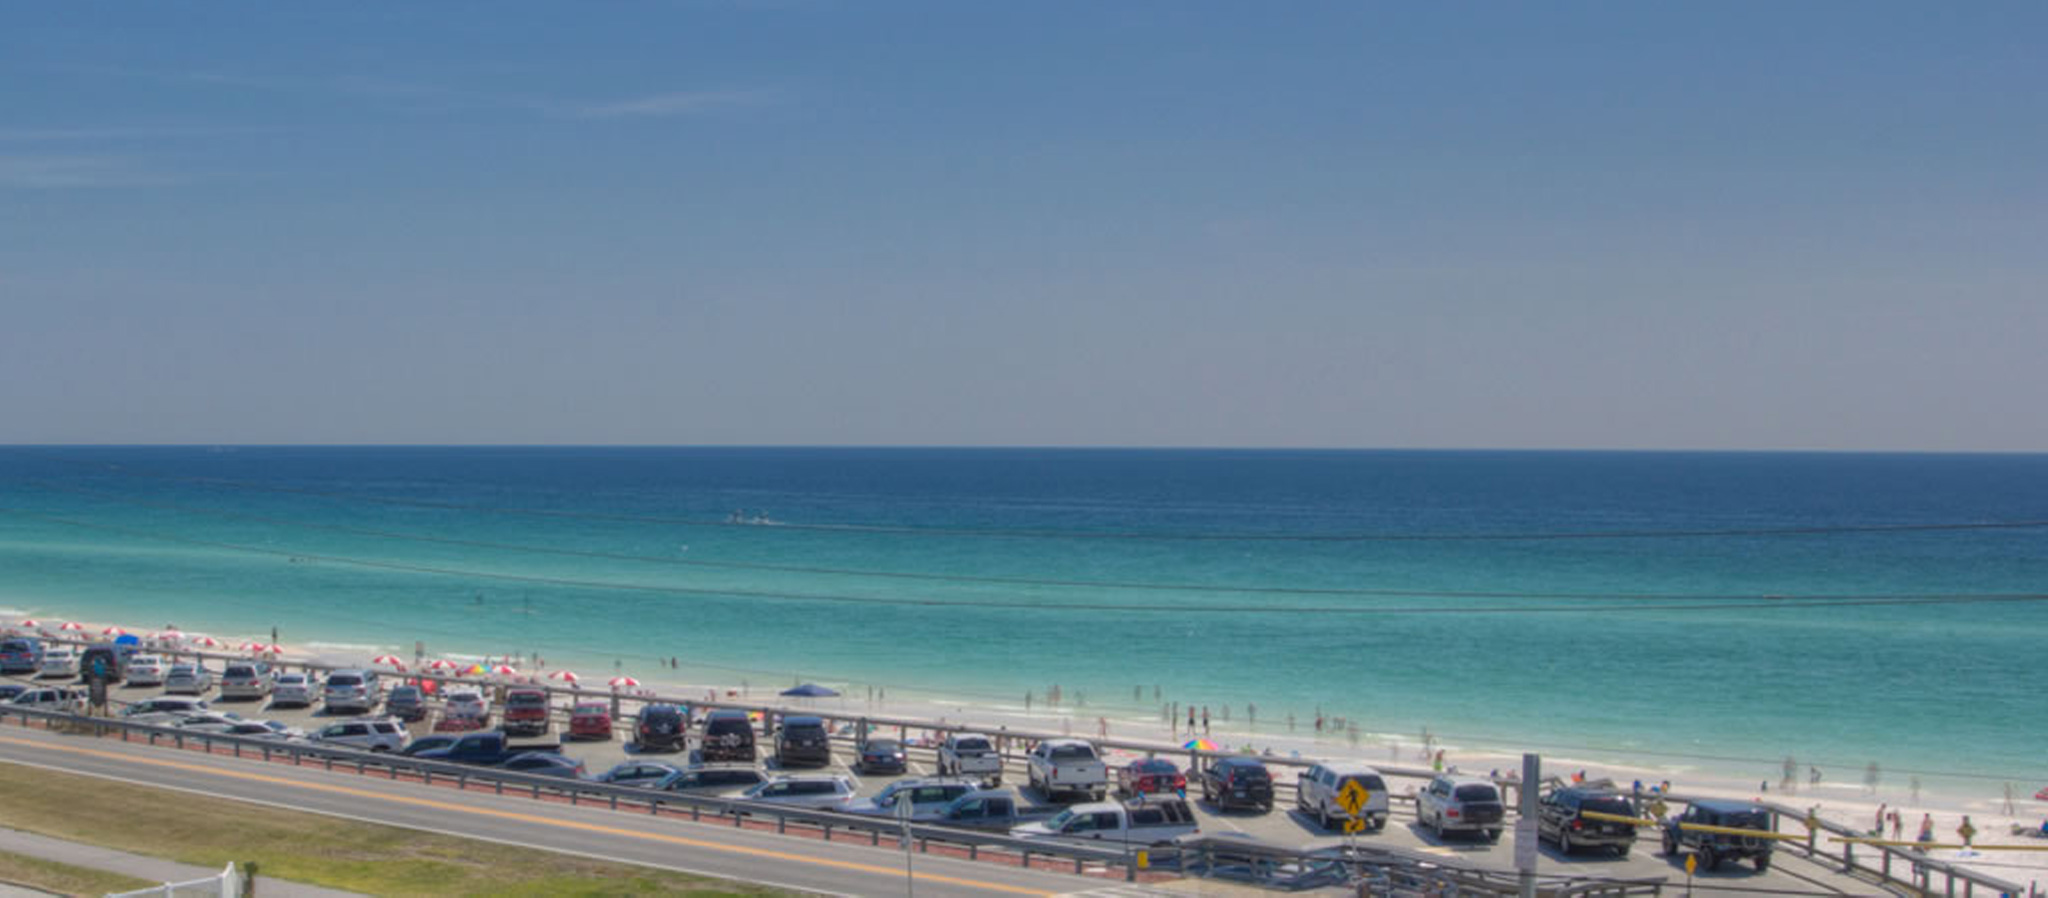 View of the beach vacationing at Crystal View in Destin FL.